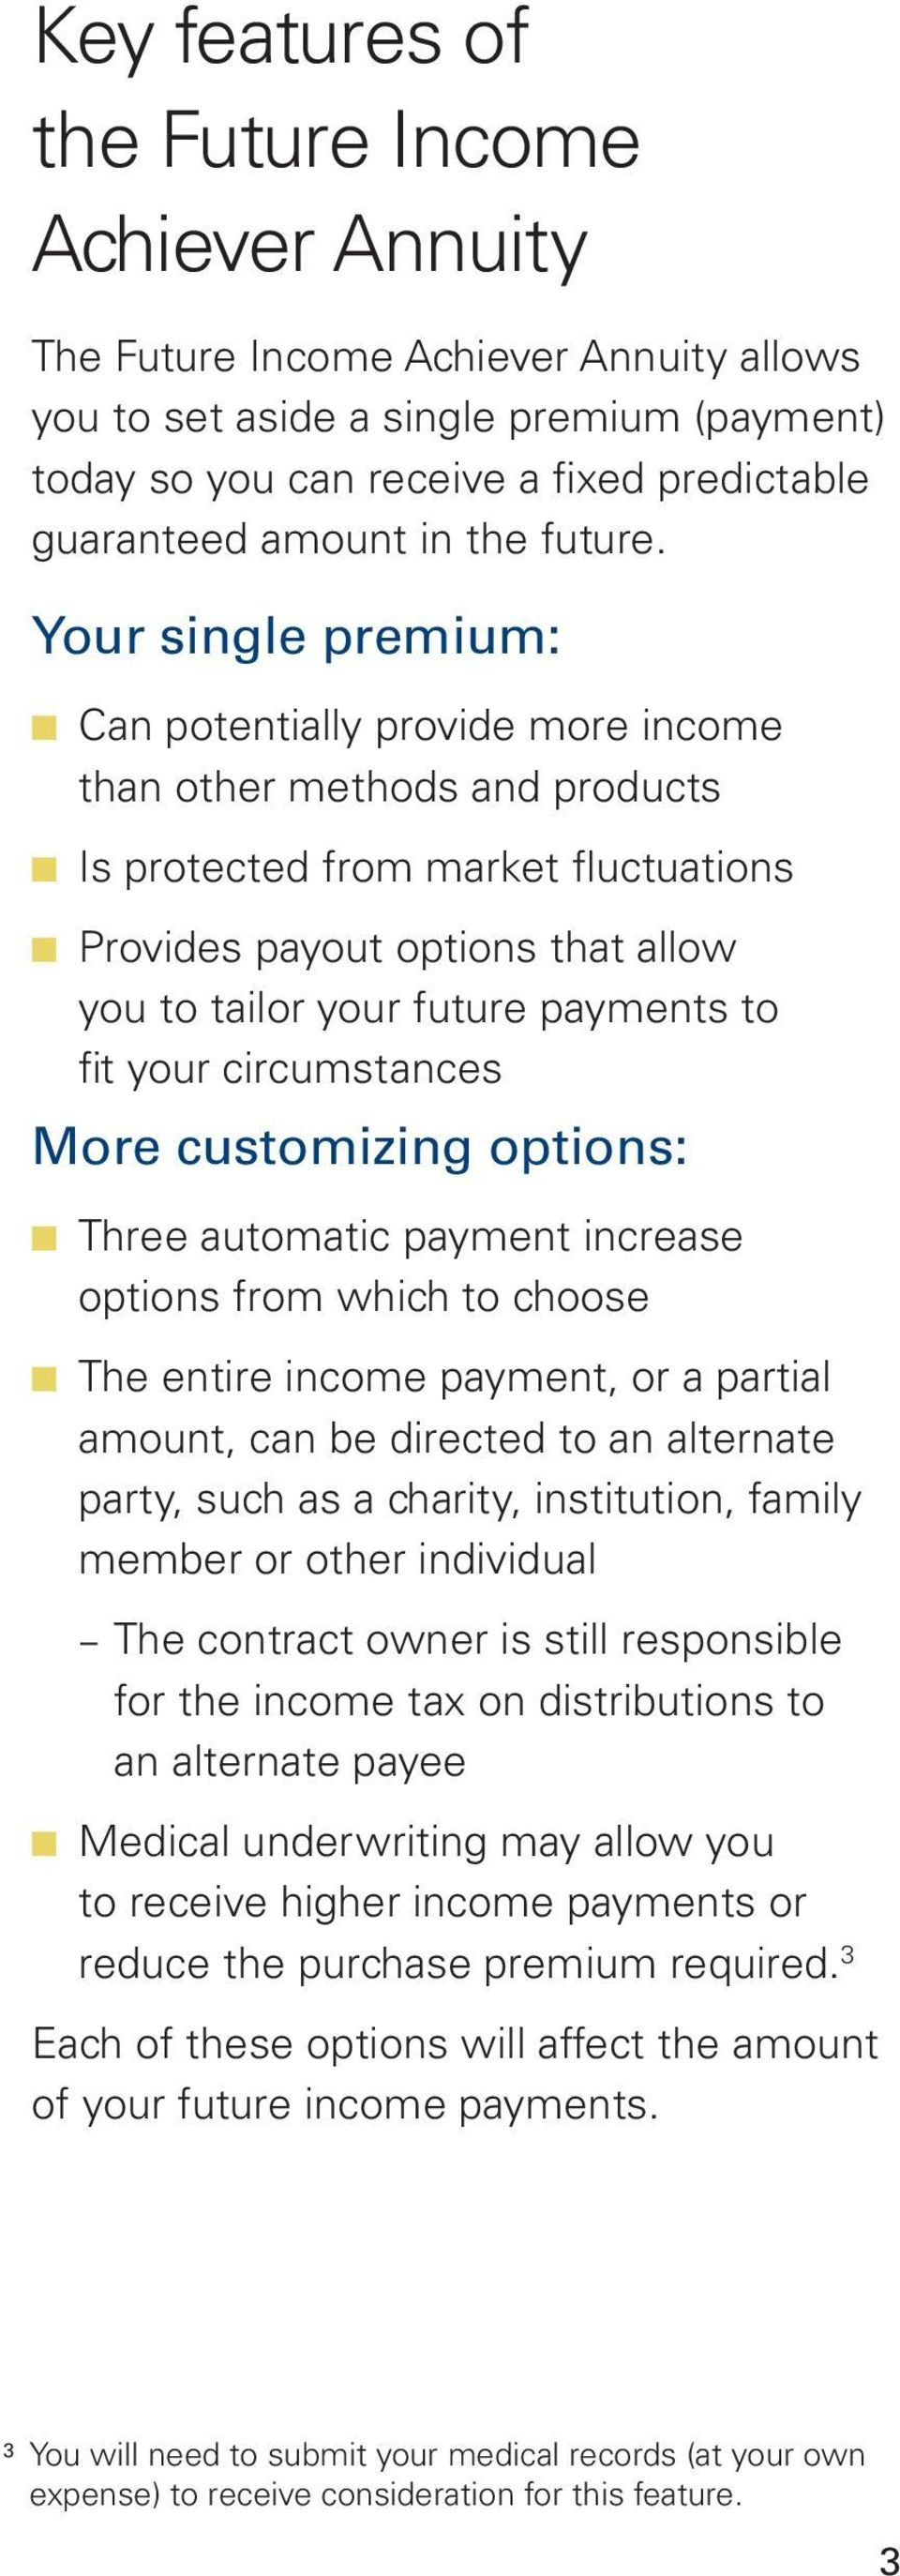 Your single premium: Can potentially provide more income than other methods and products Is protected from market fluctuations Provides payout options that allow you to tailor your future payments to